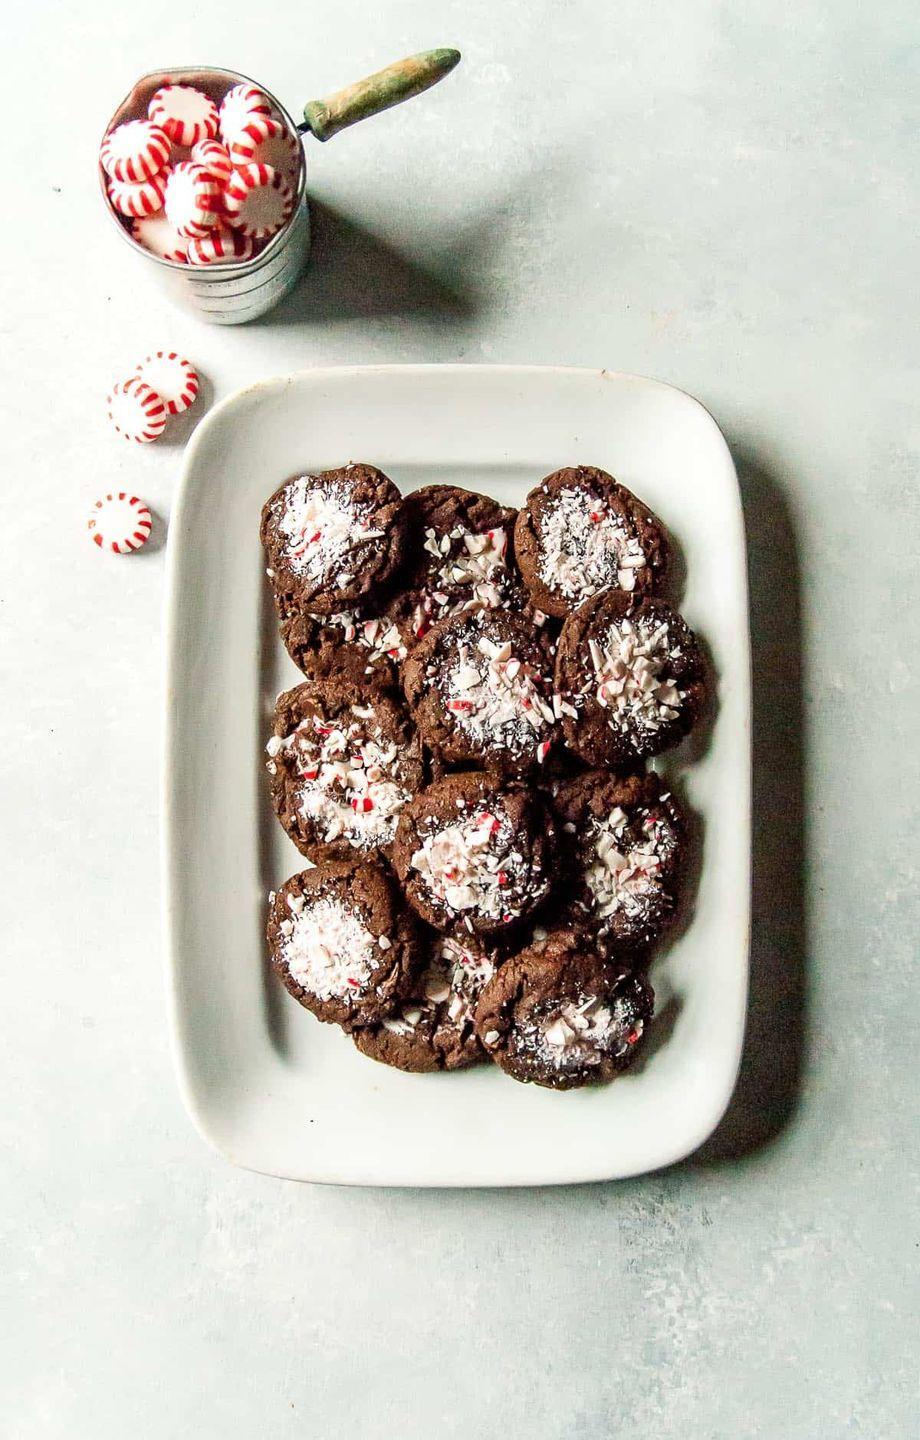 """<p>These Vegan Peppermint Cookies will be the crowning glory of your Christmas dessert spread.</p><p>Get the recipe from <a href=""""https://heartofabaker.com/vegan-chocolate-peppermint-cookies/"""" rel=""""nofollow noopener"""" target=""""_blank"""" data-ylk=""""slk:Heart of a Baker"""" class=""""link rapid-noclick-resp"""">Heart of a Baker</a>.</p>"""